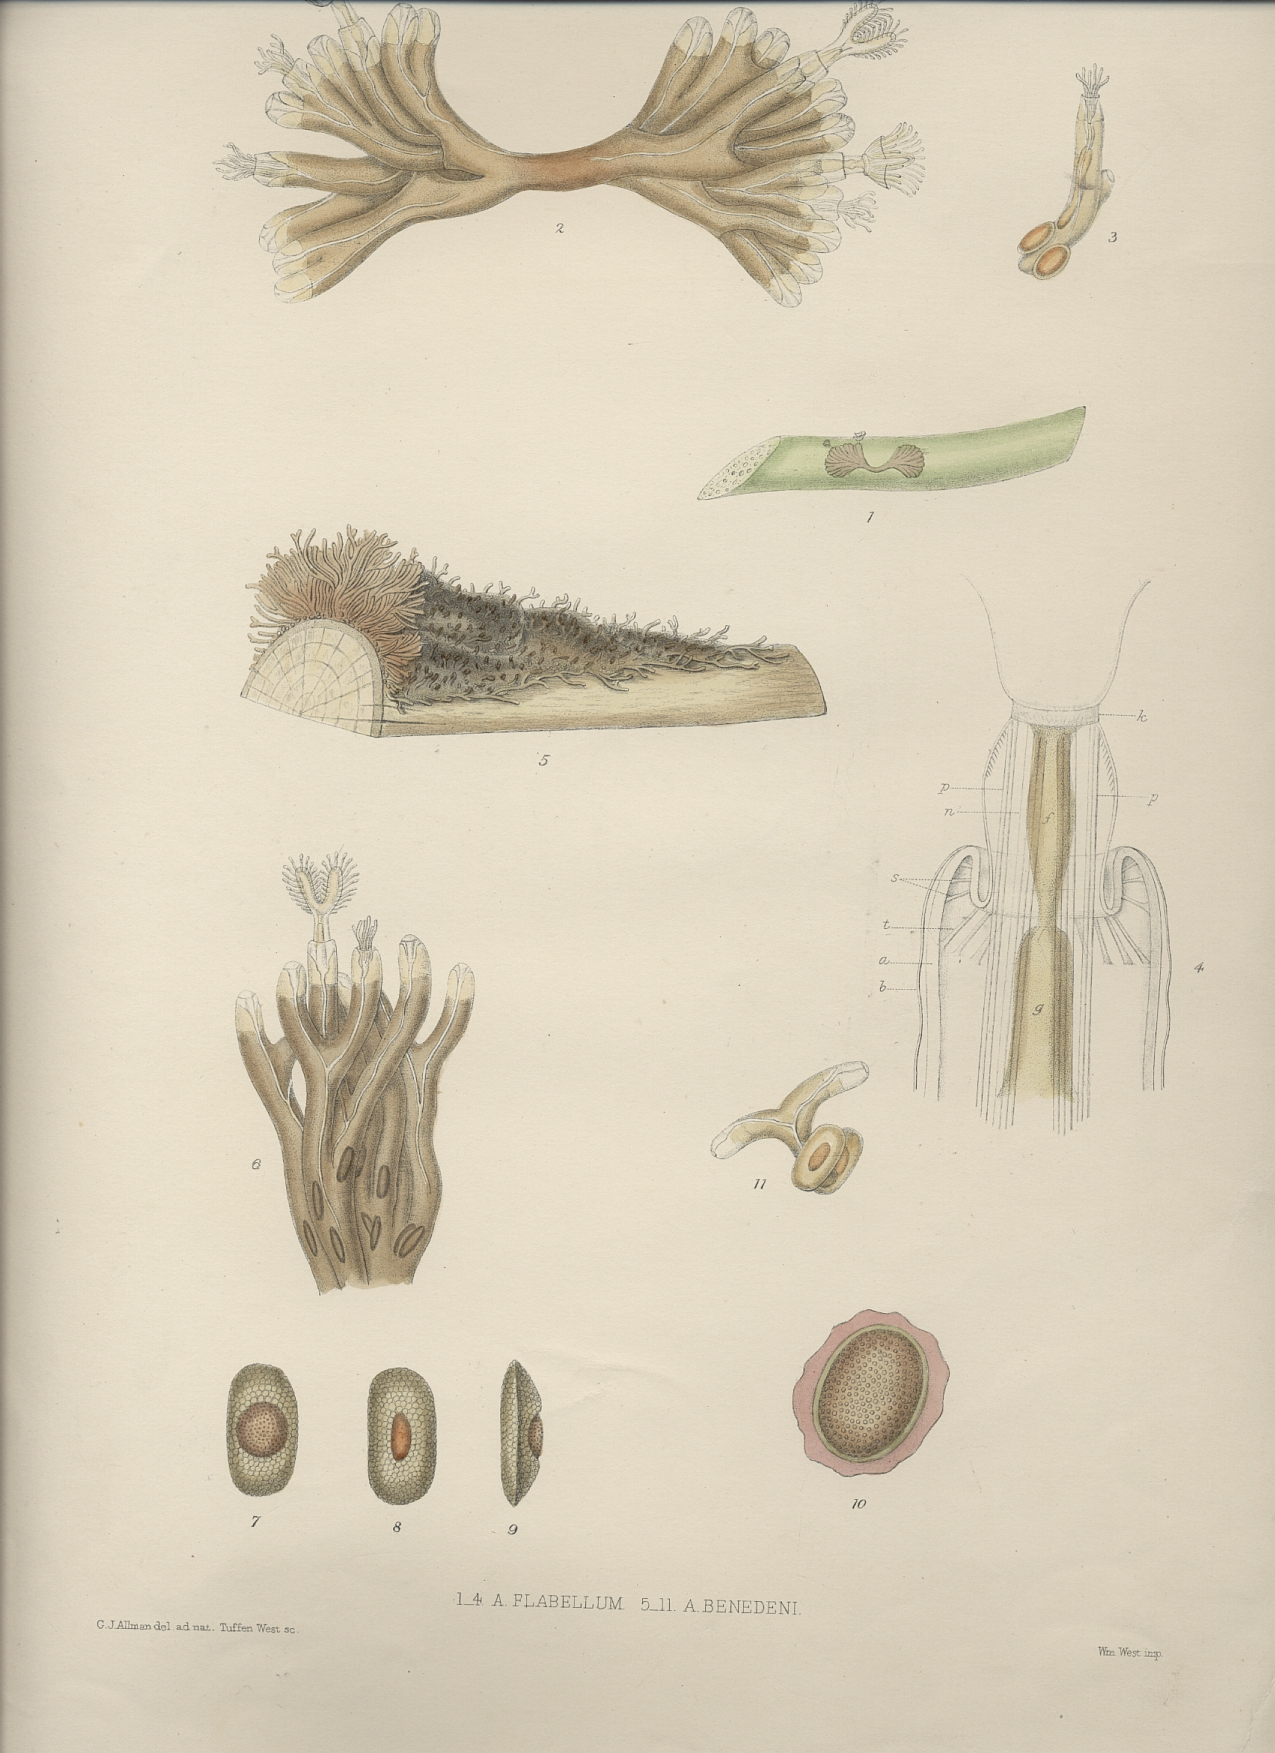 A monograph of the fresh-water polyzoa - plate 4